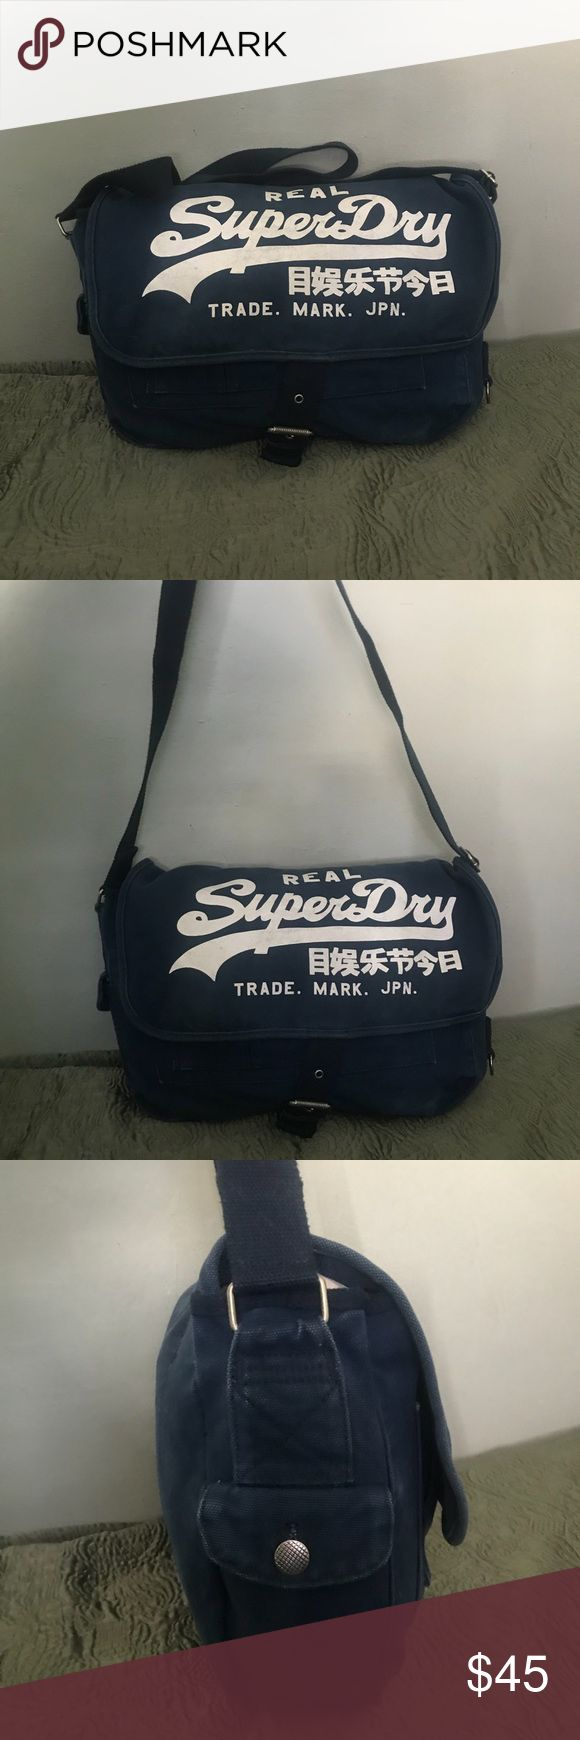 SUPERDRY Japan Denim Bag This is great for school, work or anything. It's a beautiful design. Very classic and manual. No flaws Super Dry Bags Crossbody Bags